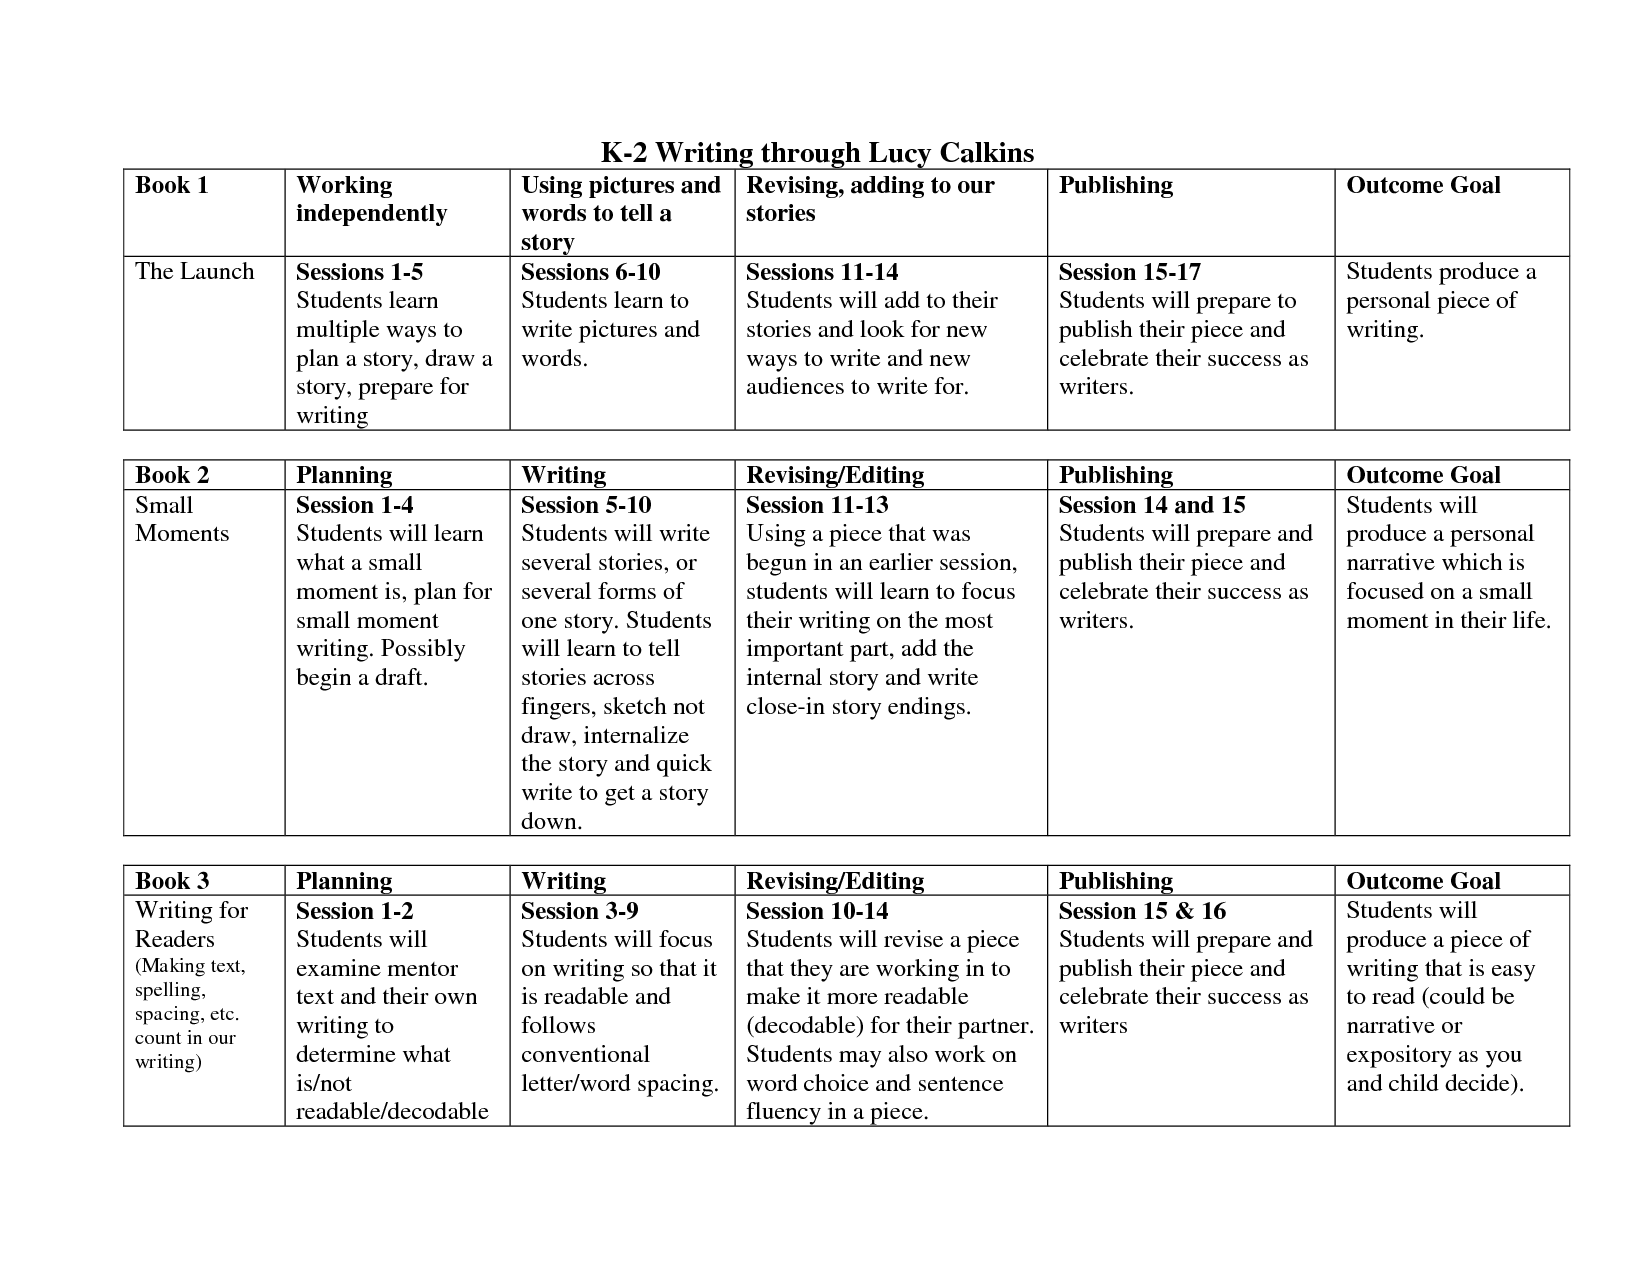 lucy calkins lesson plan template writing through lucy calkins